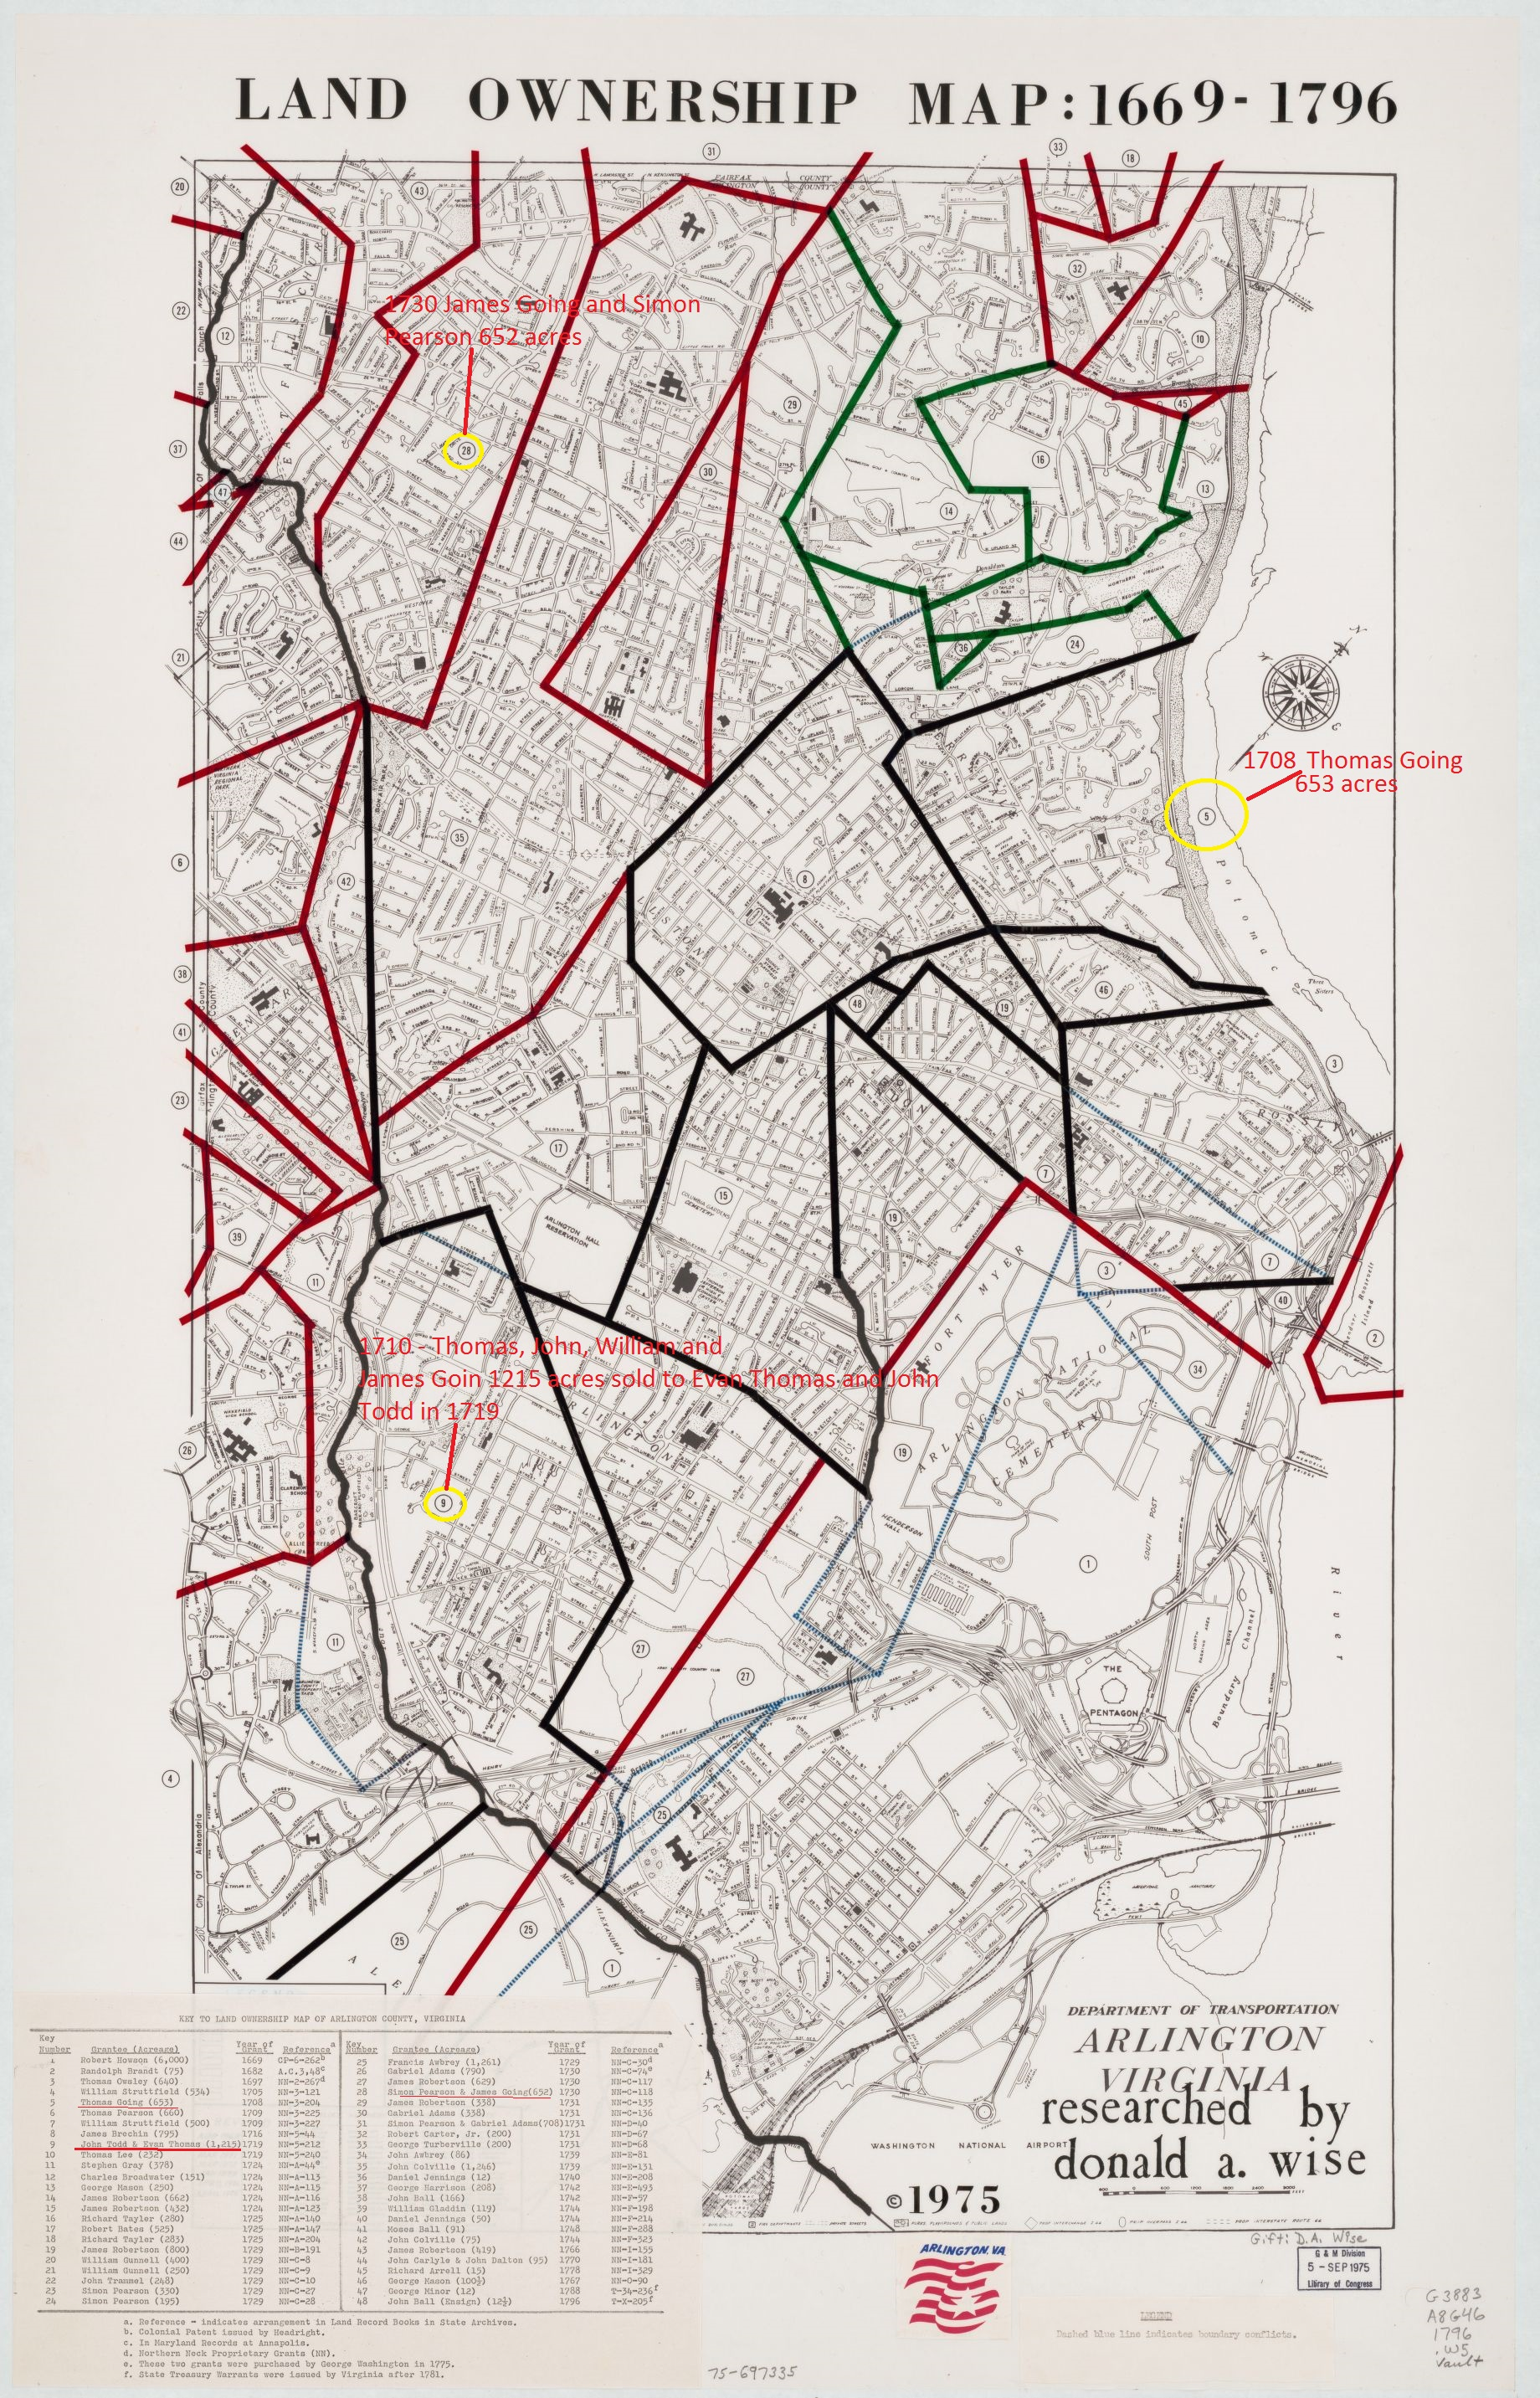 arlington-county-land-owner-map-1669-to-1796-including-going-lands-1215acres-652acres-and-653acres-marked